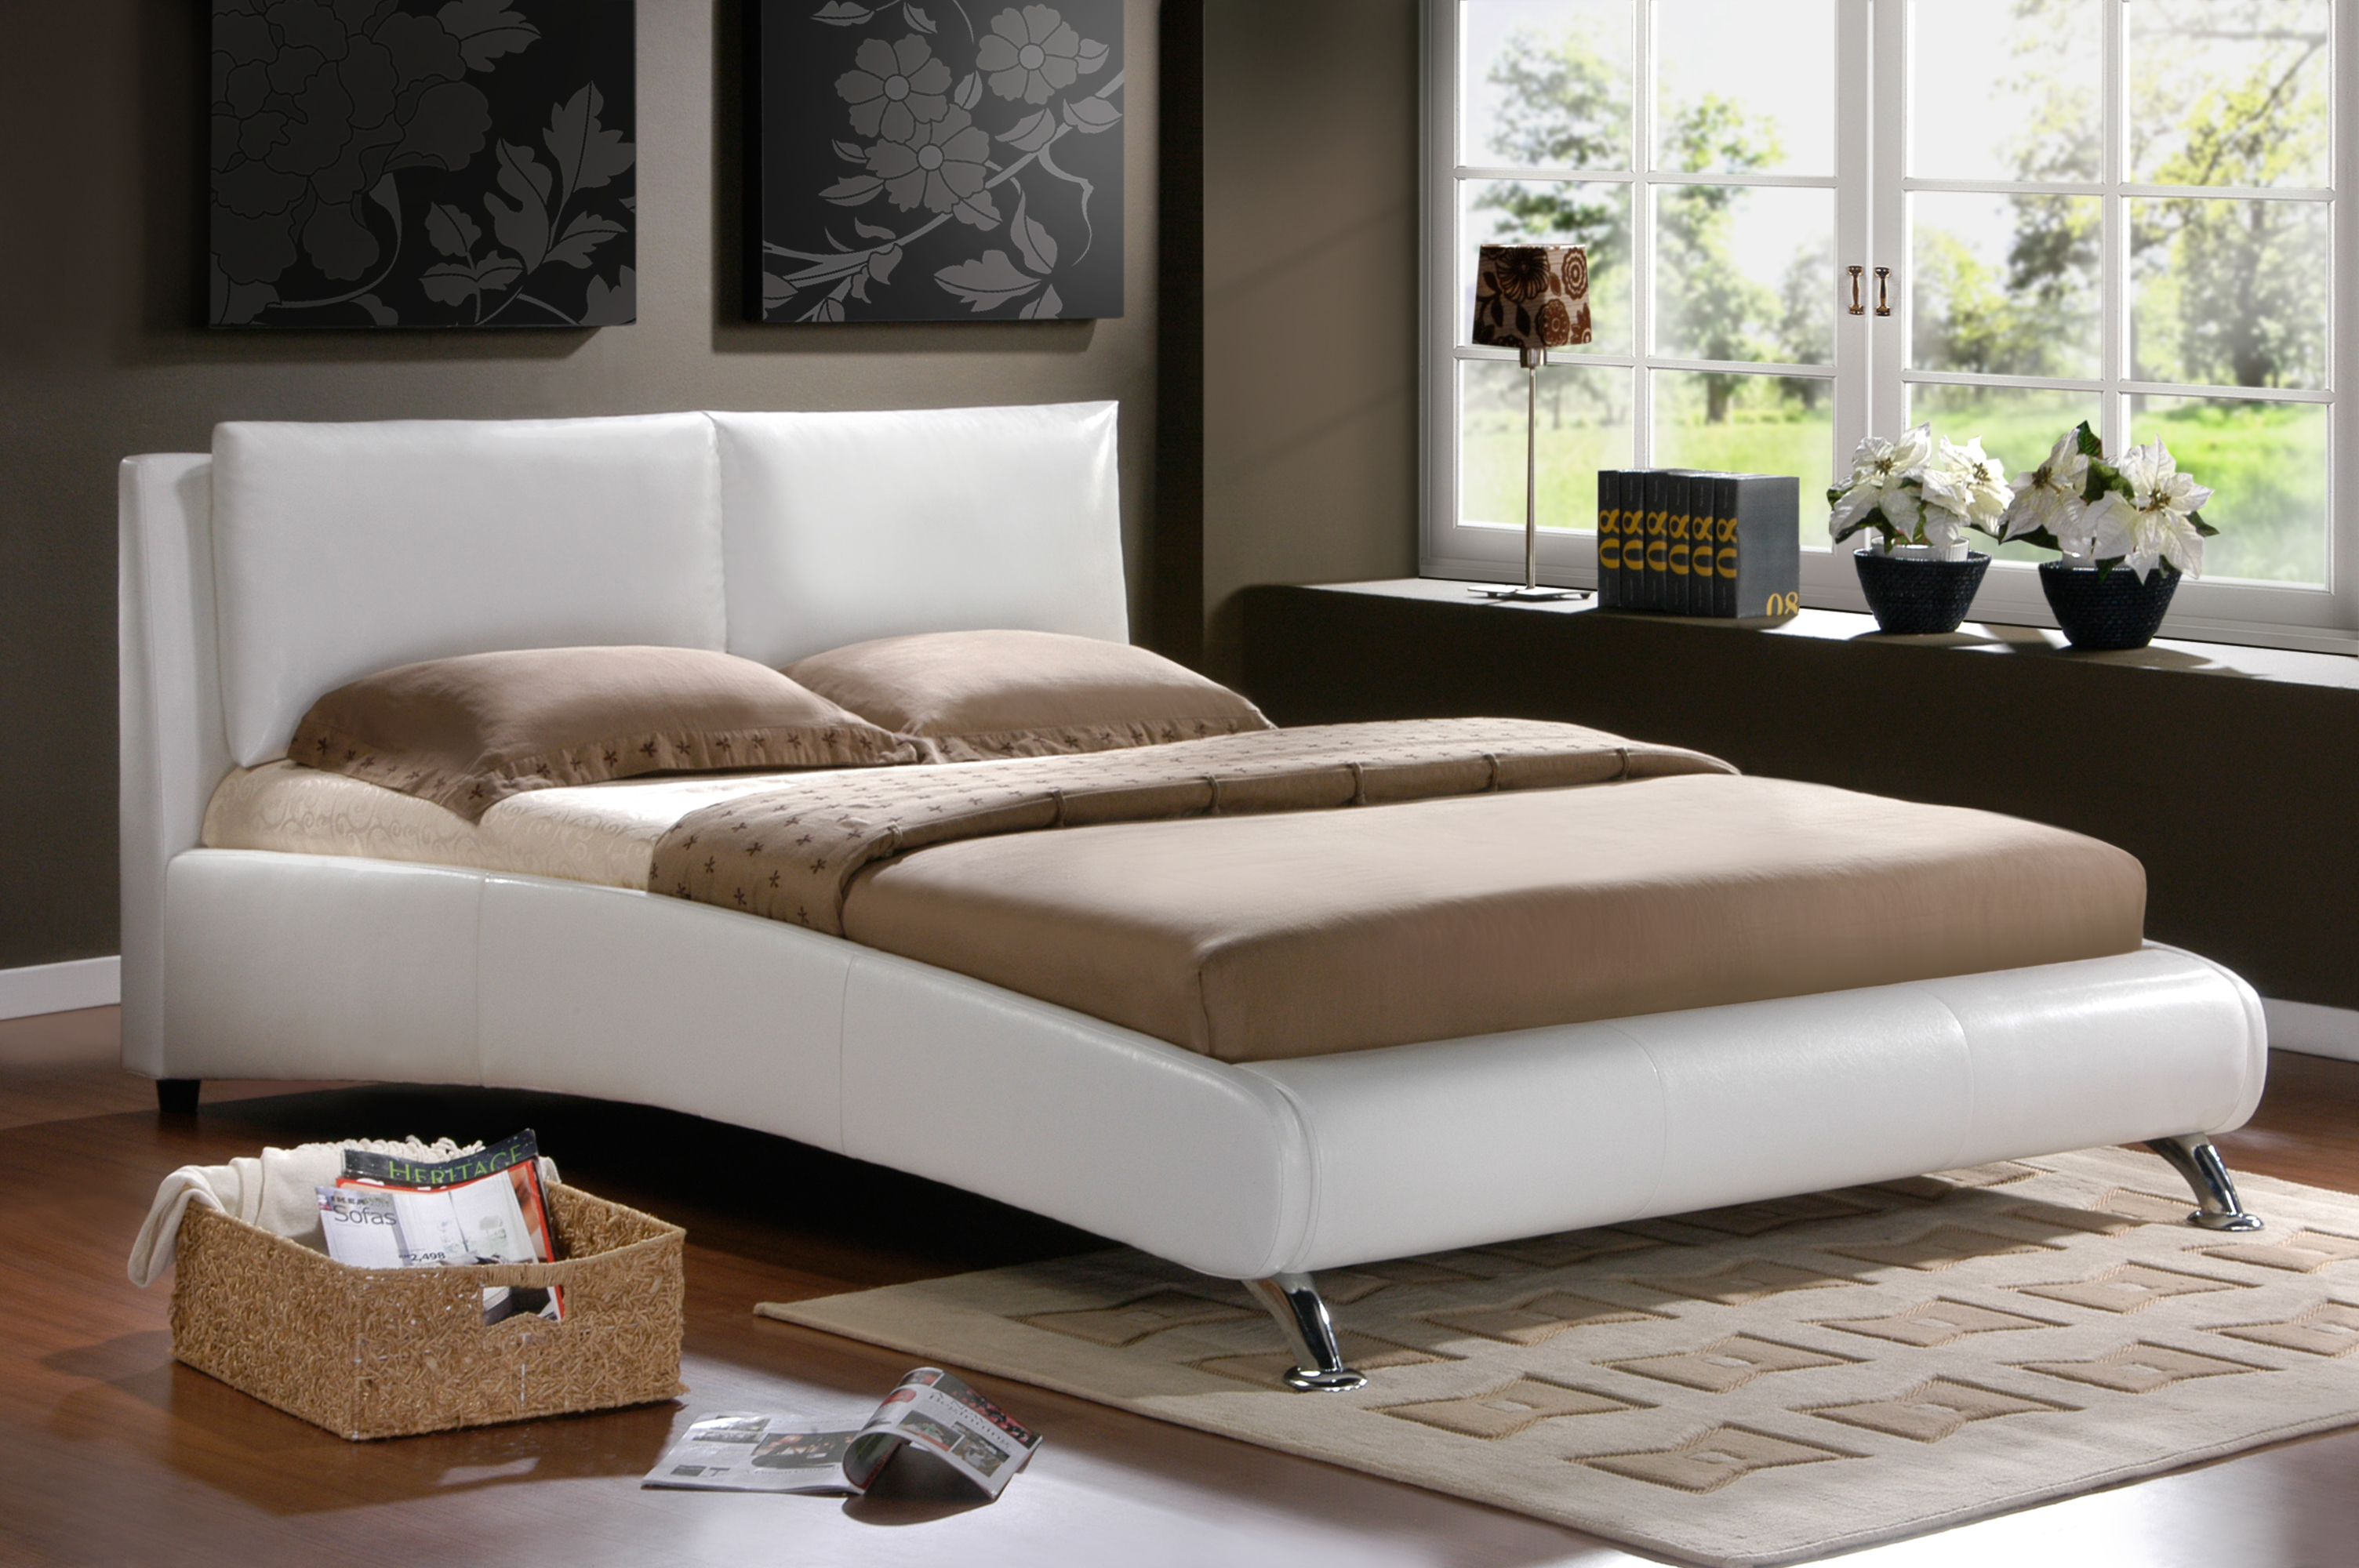 White Leather King Size Bed 3008 x 2000